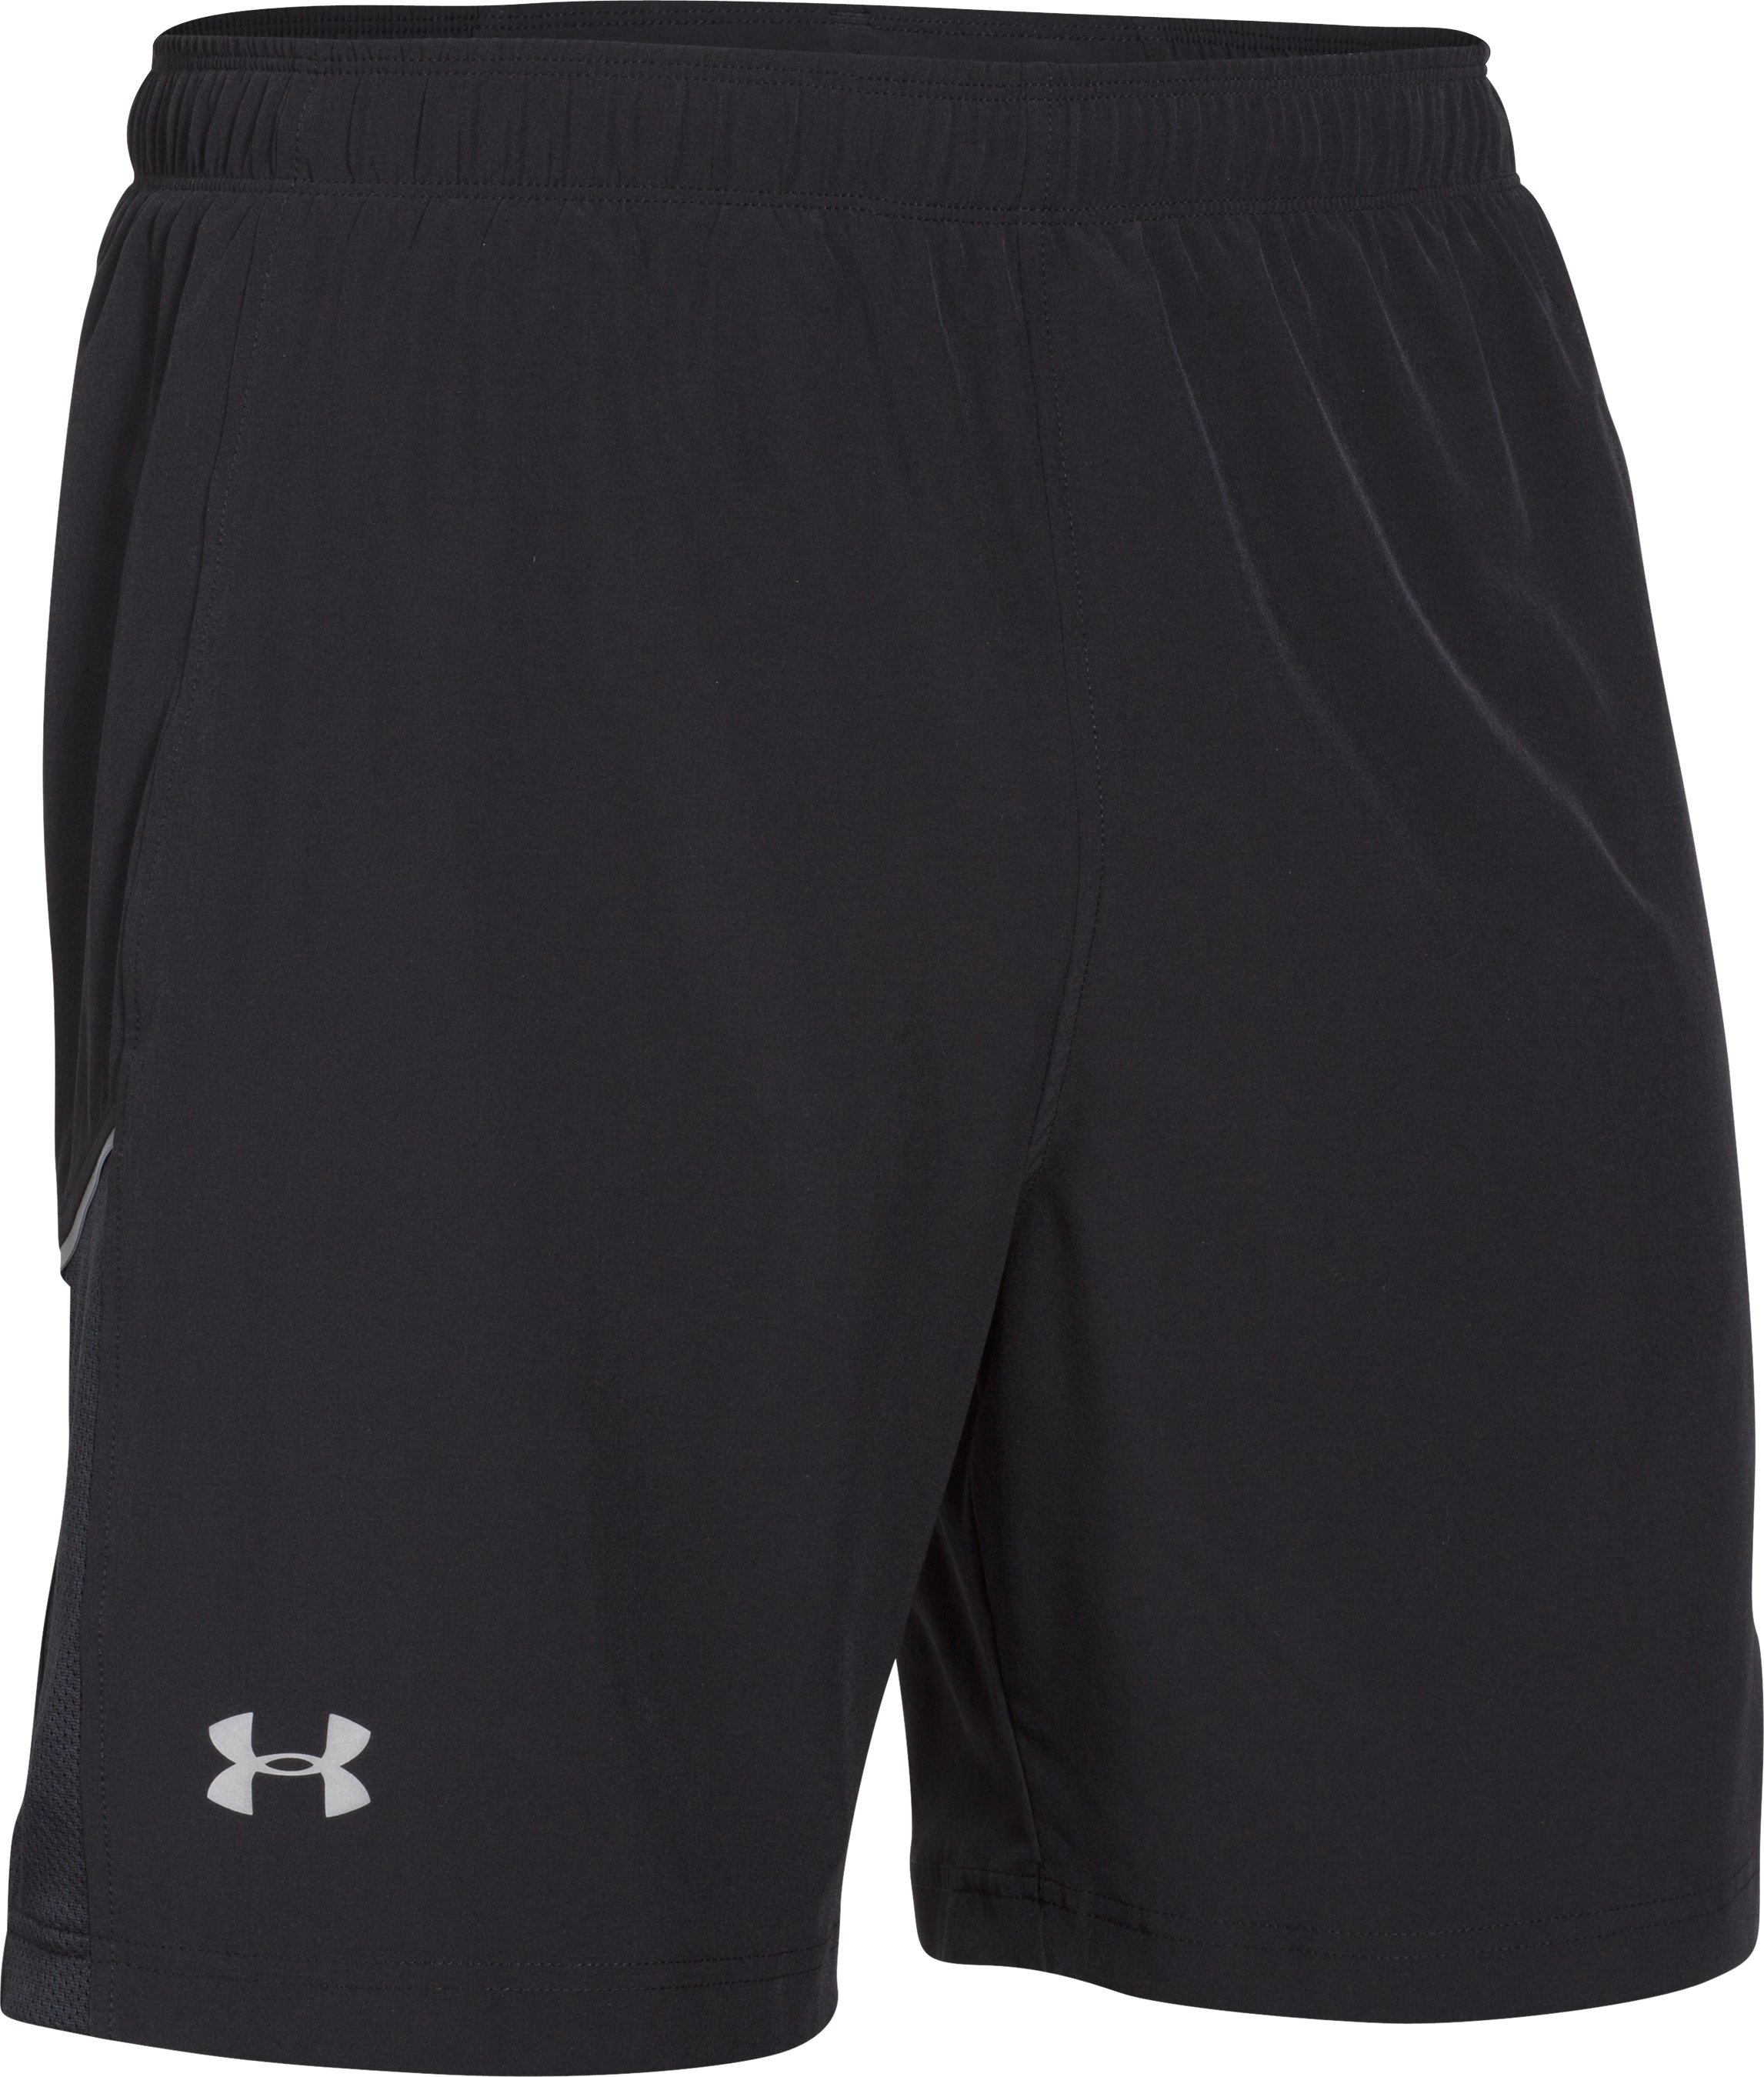 "Men's UA Launch Run Stretch-Woven 7"" Shorts, Black"